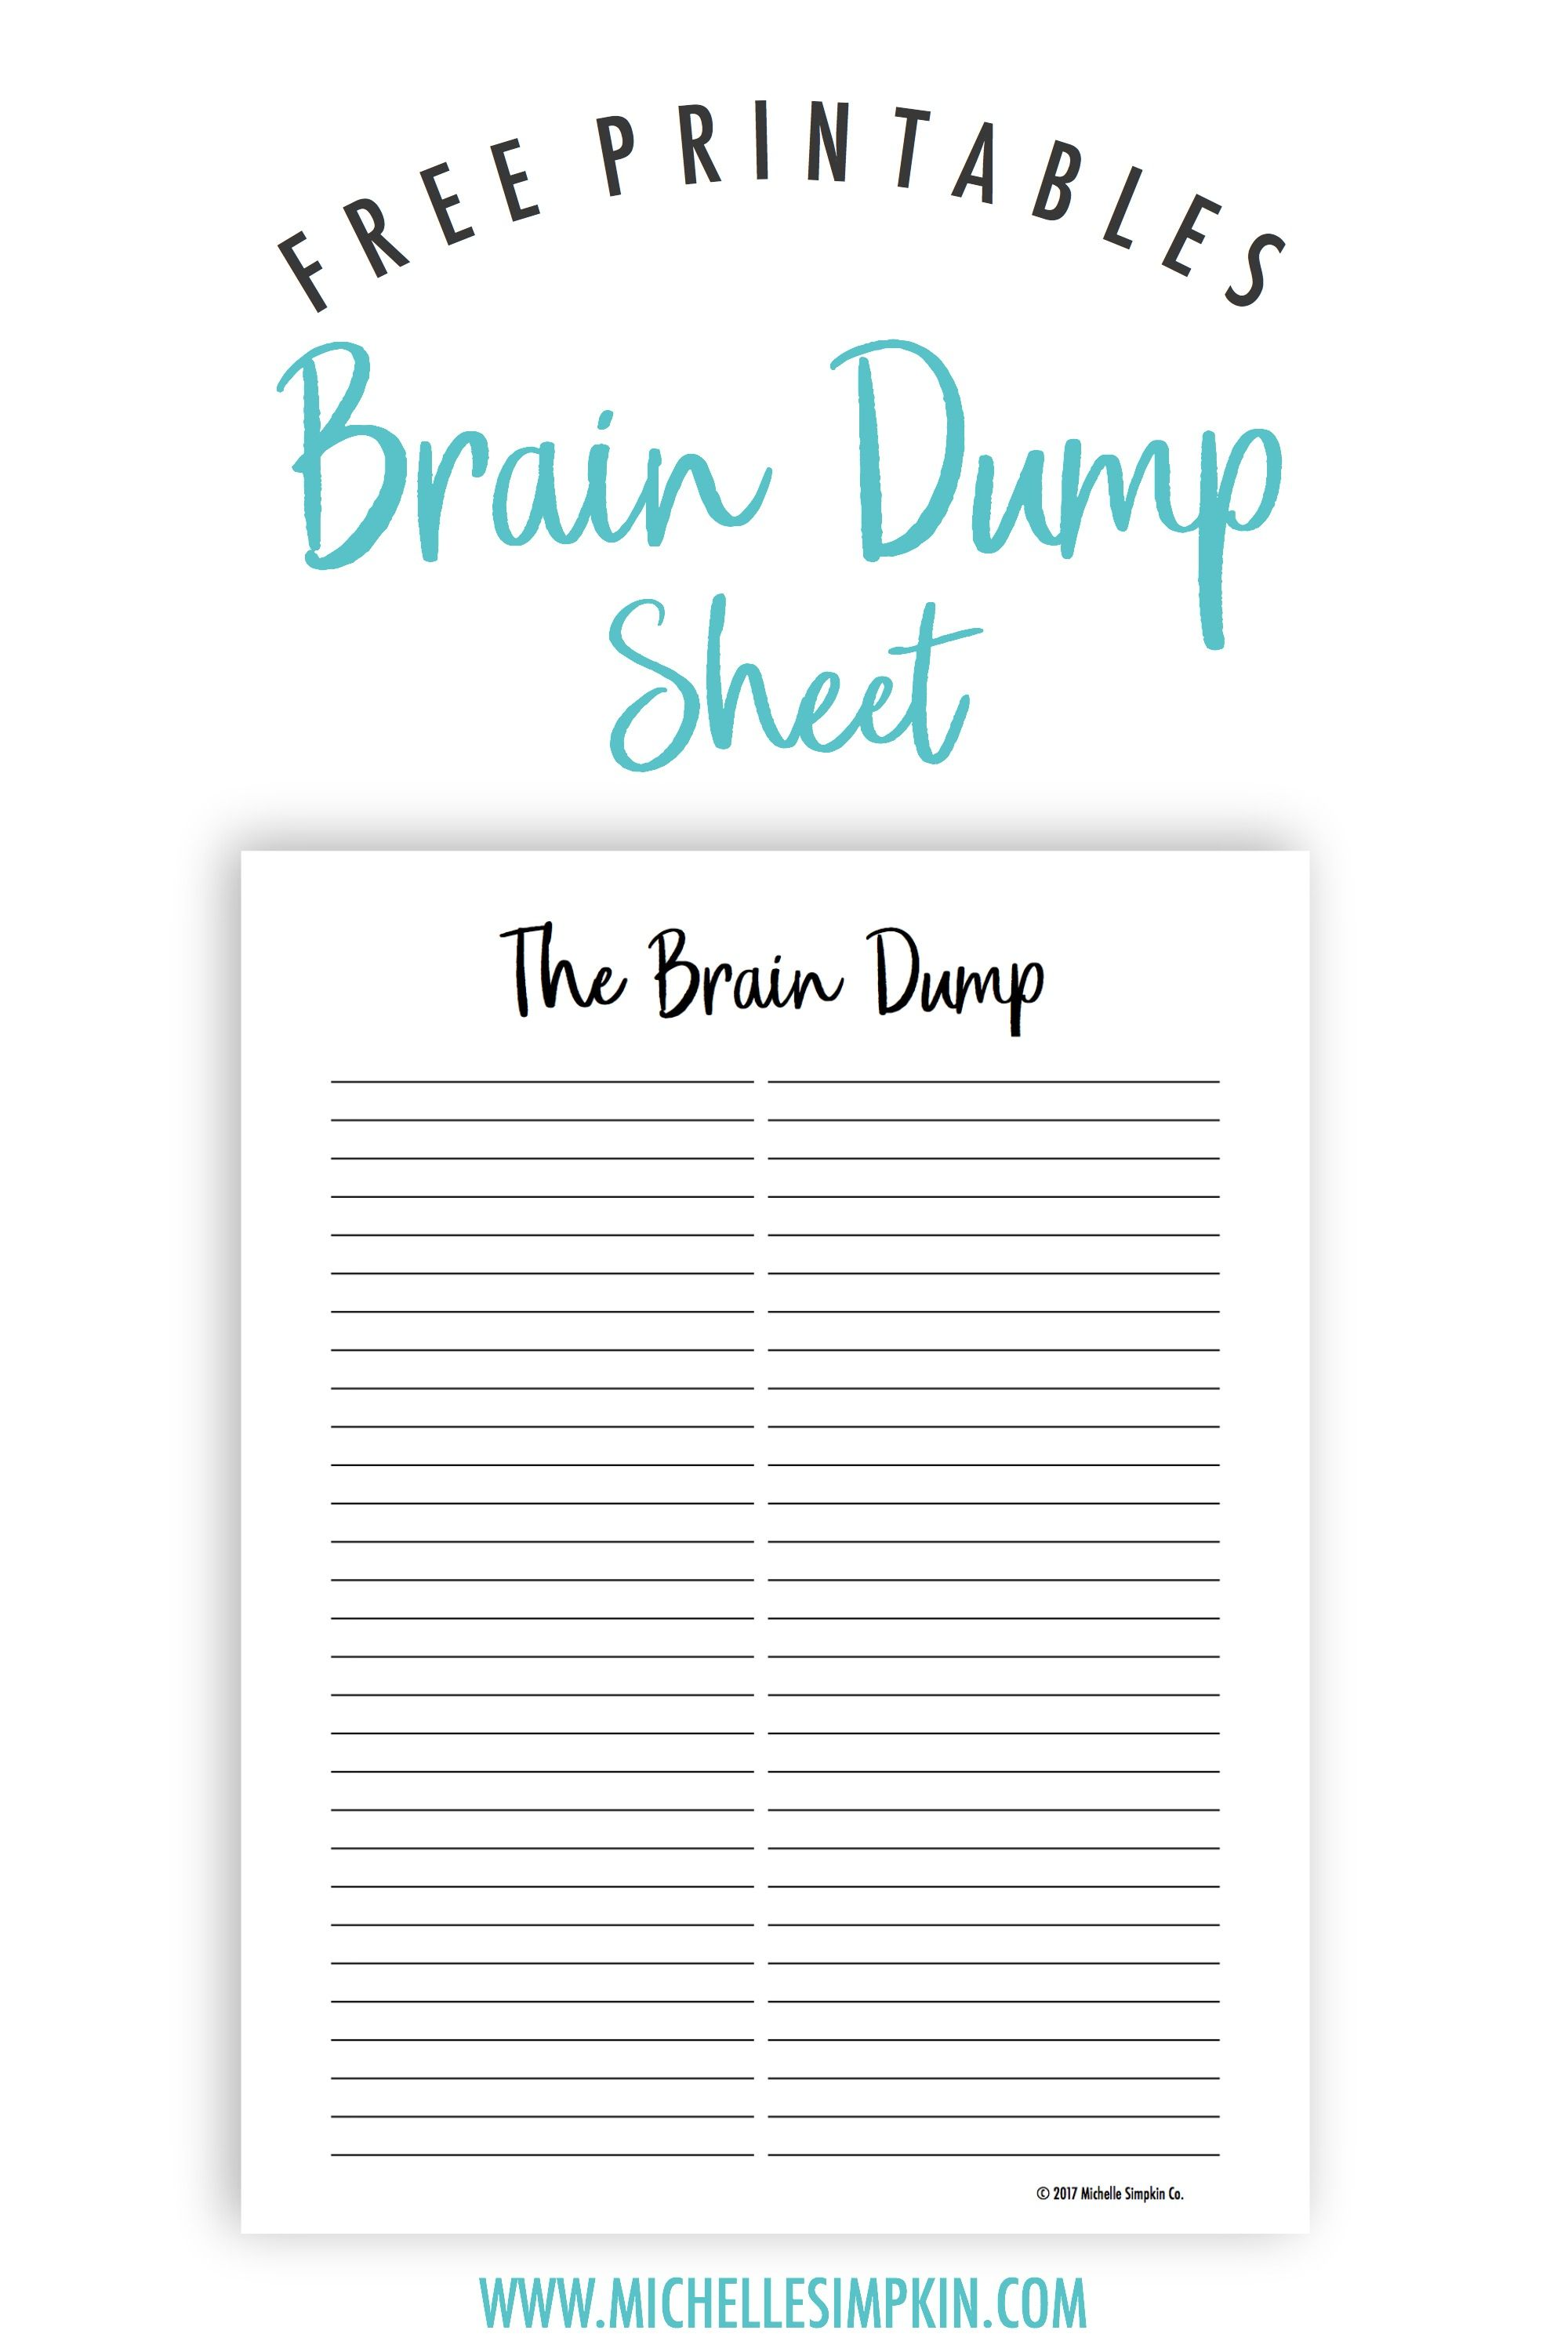 Striking image for brain dump printable